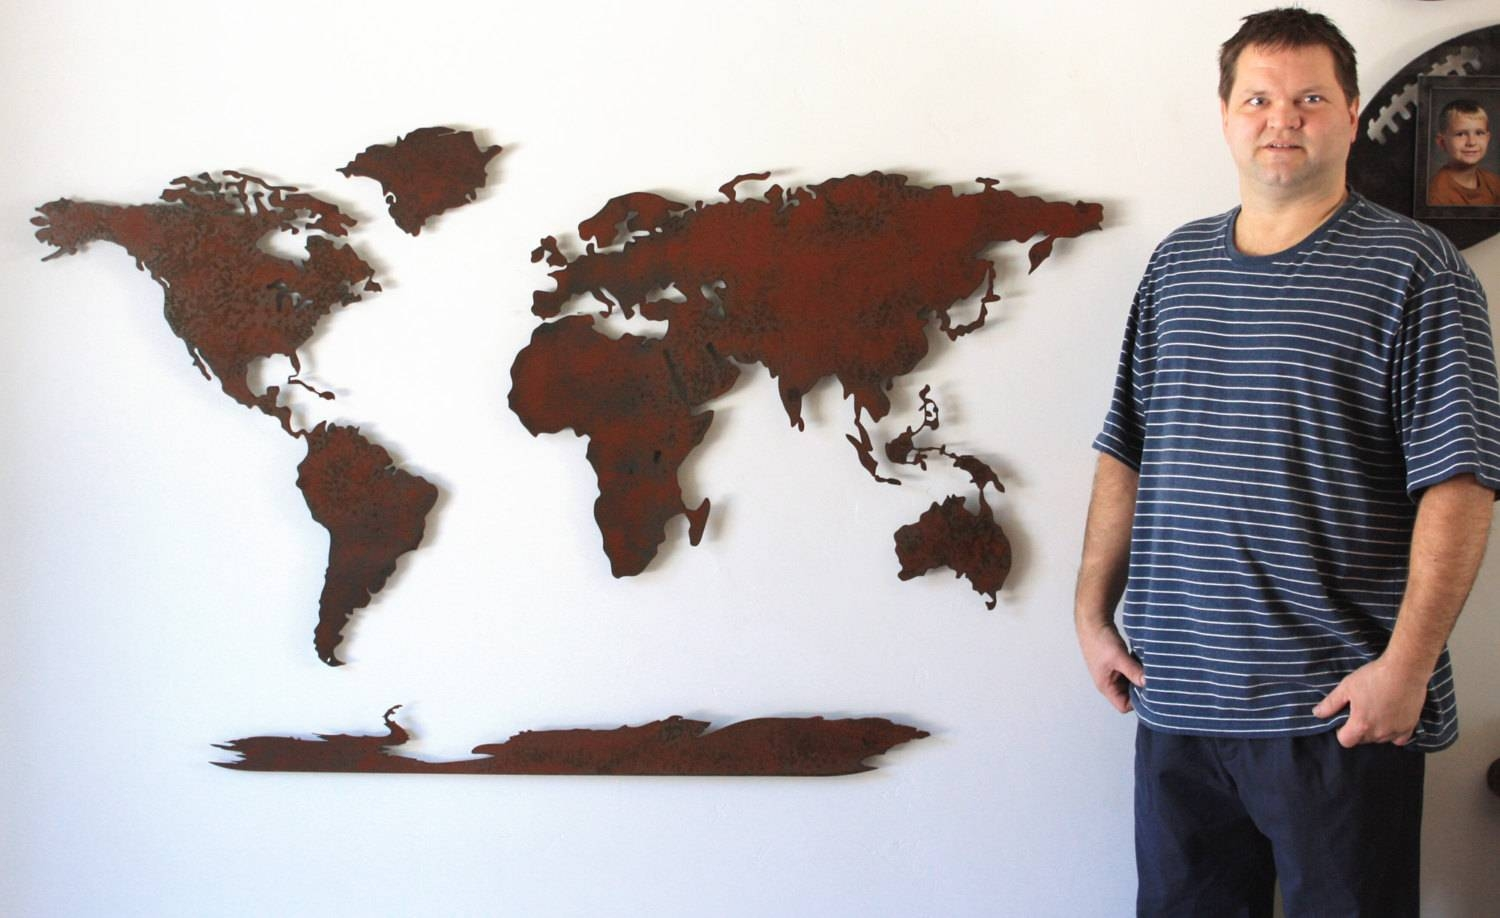 World Map Metal Wall Art 60 Wide X 36 Tall 5 Throughout Most Up To Date Tall Metal Wall Art (View 19 of 20)